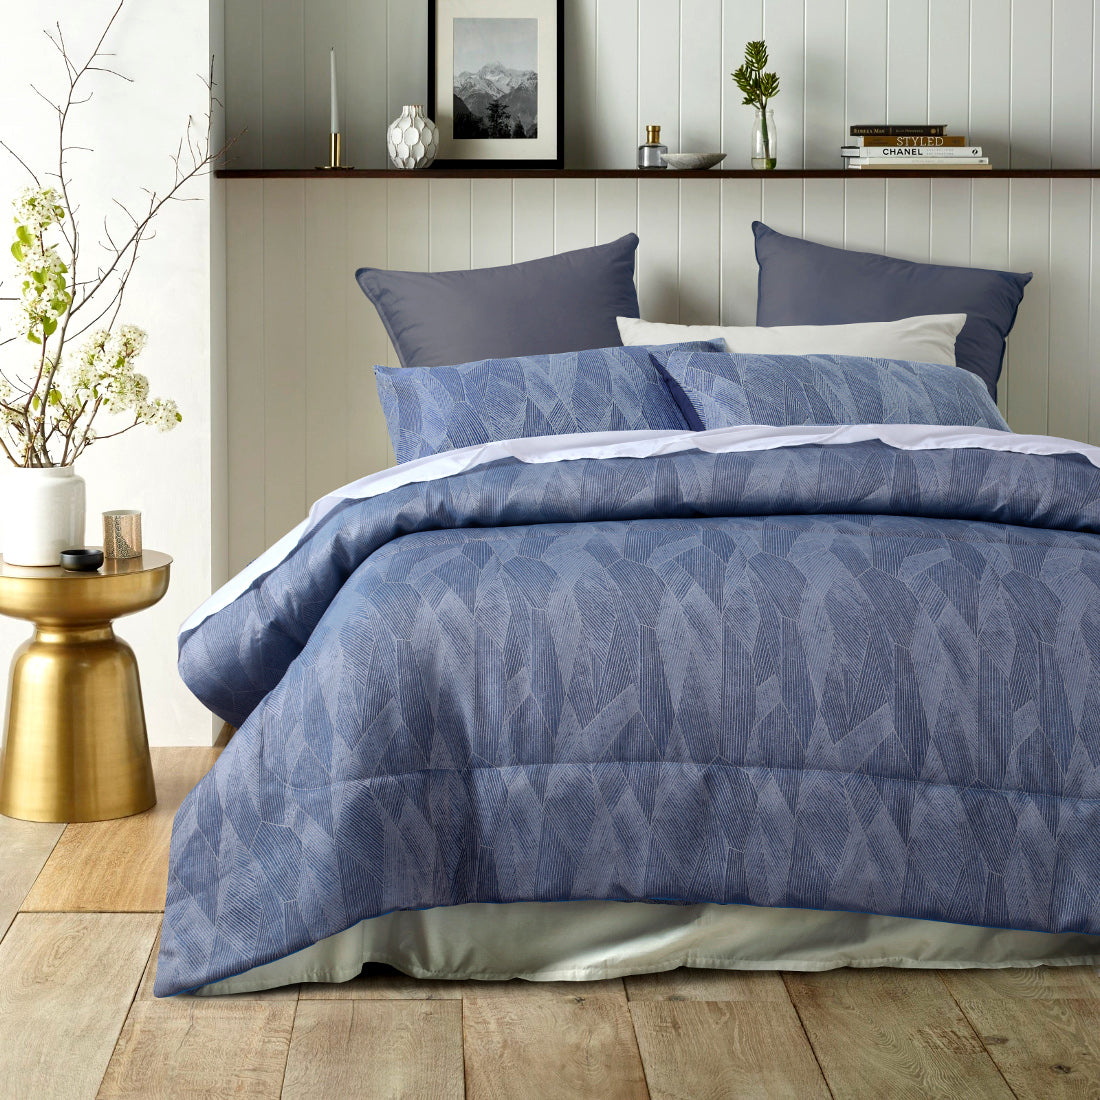 JAVA Blue Abstract Comforter Set - 3 piece